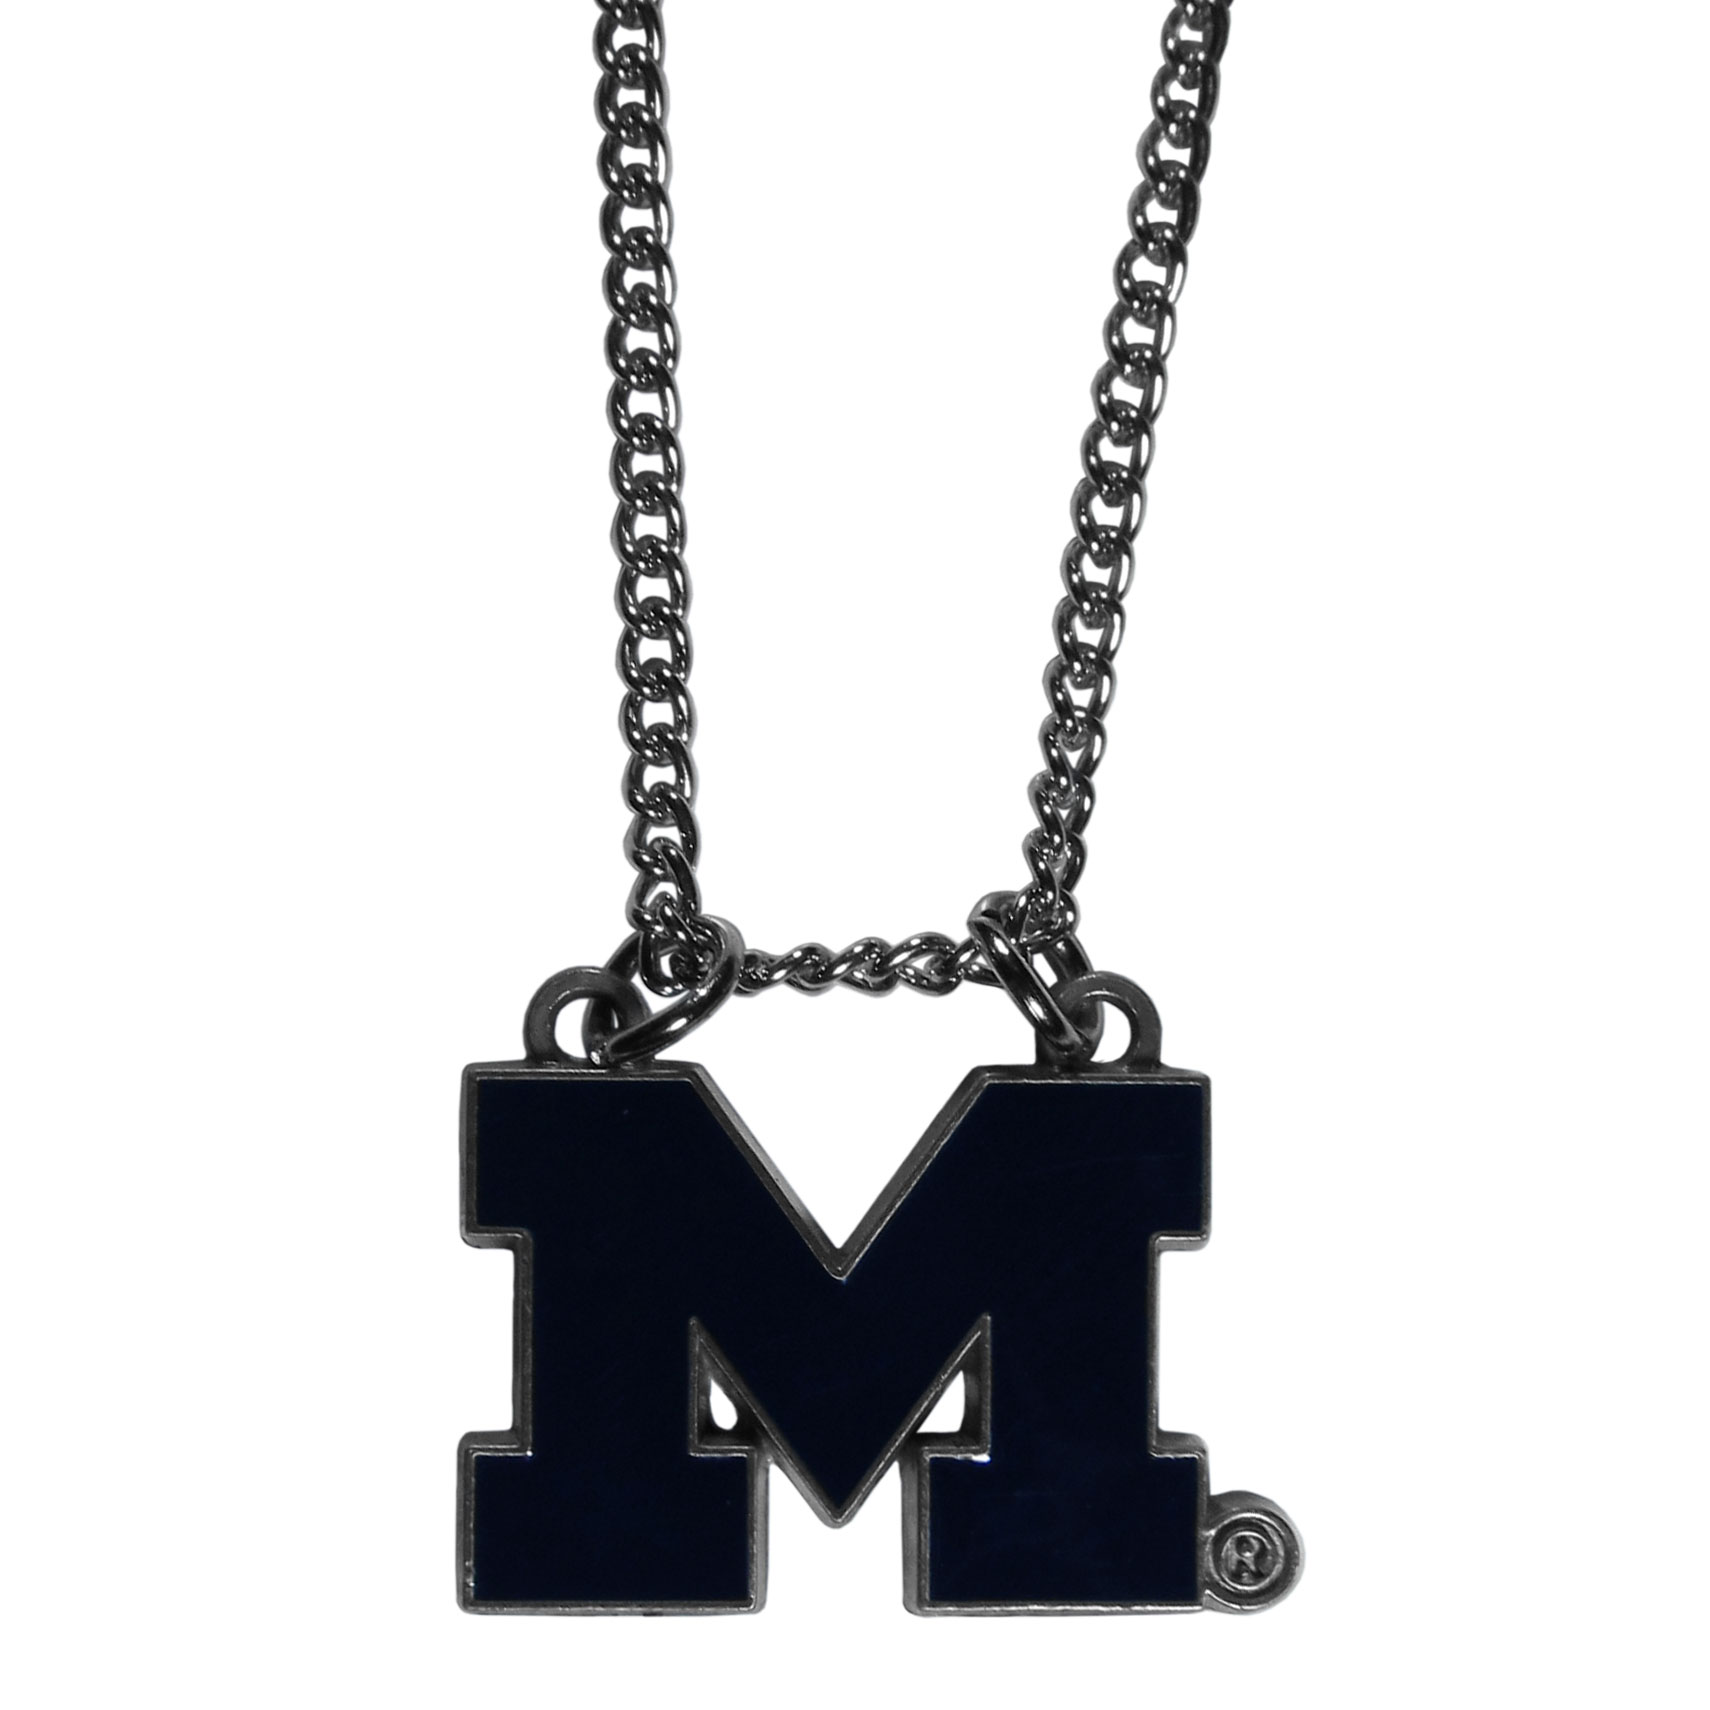 Michigan Wolverines Chain Necklace - Make a statement with our chain necklaces. The 22 inch chain features a fully cast, metal Michigan Wolverines pendant with vivid enameled details. Perfect accessory for game day and nice enough to wear everyday!